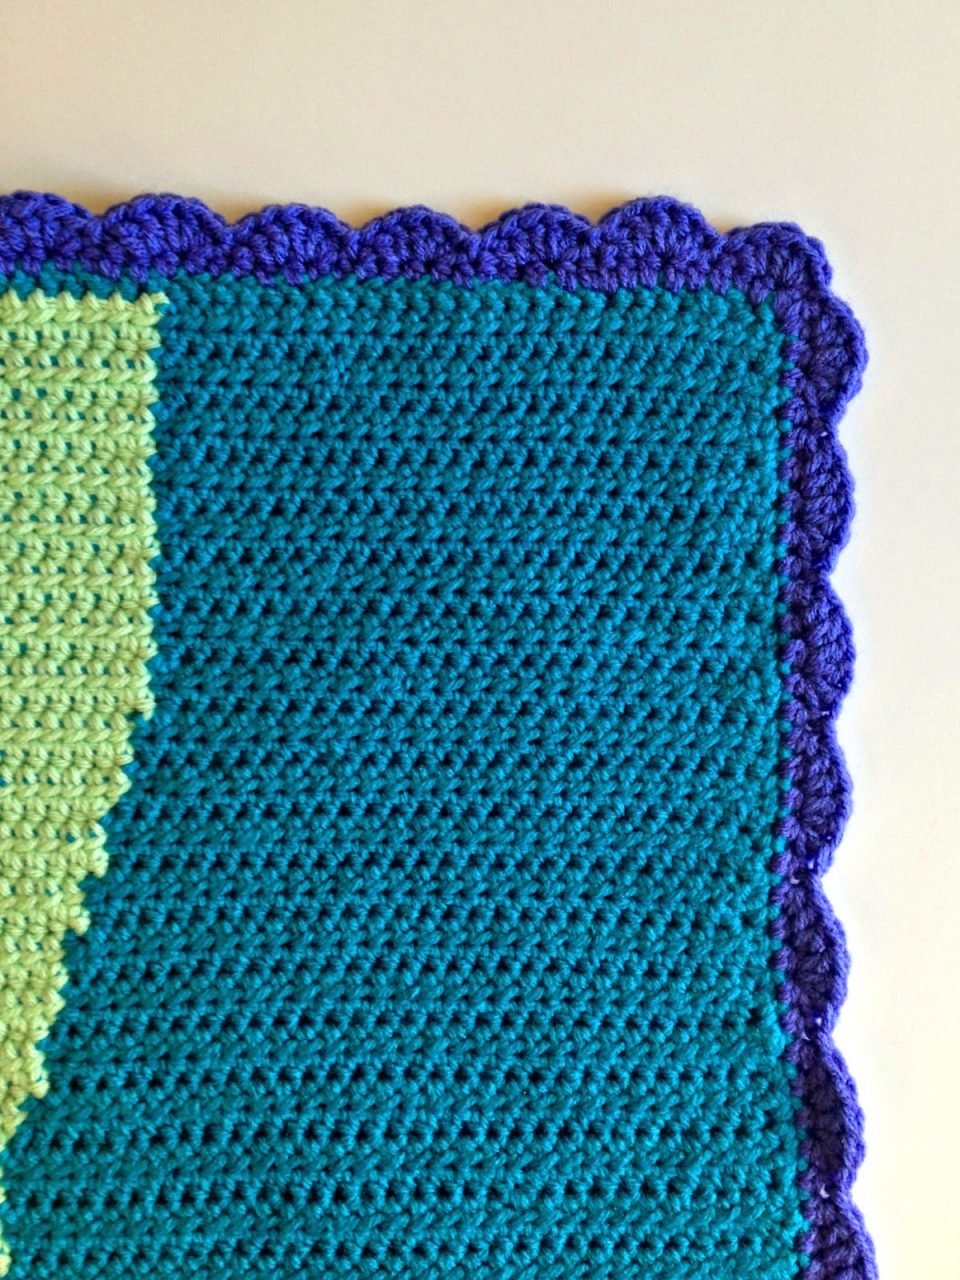 Amazing Crochet Mermaid Pattern for Baby's Mermaid Tail Free Crochet Mermaid Tail Blanket Pattern With Border Save Crocheted